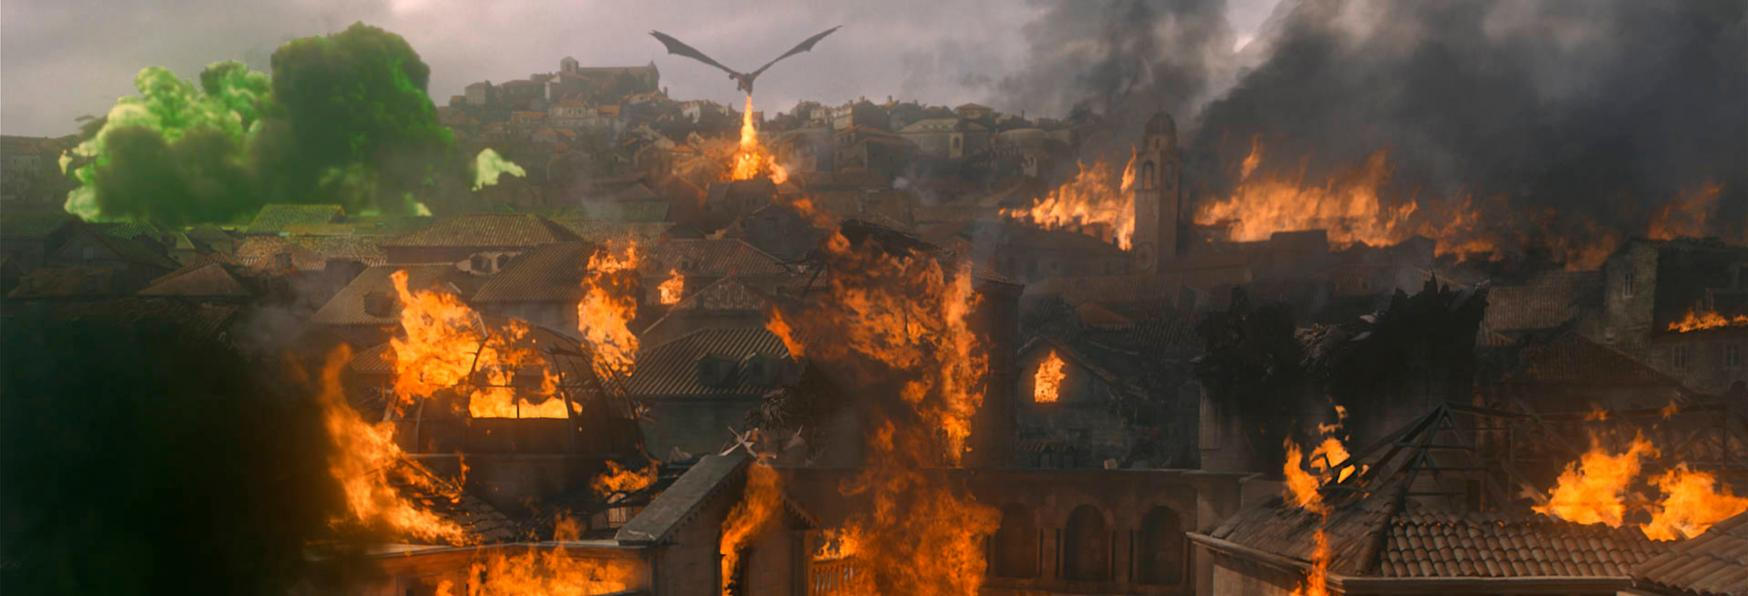 Game of Thrones: HBO ordina la Serie Spin-off House of the Dragon